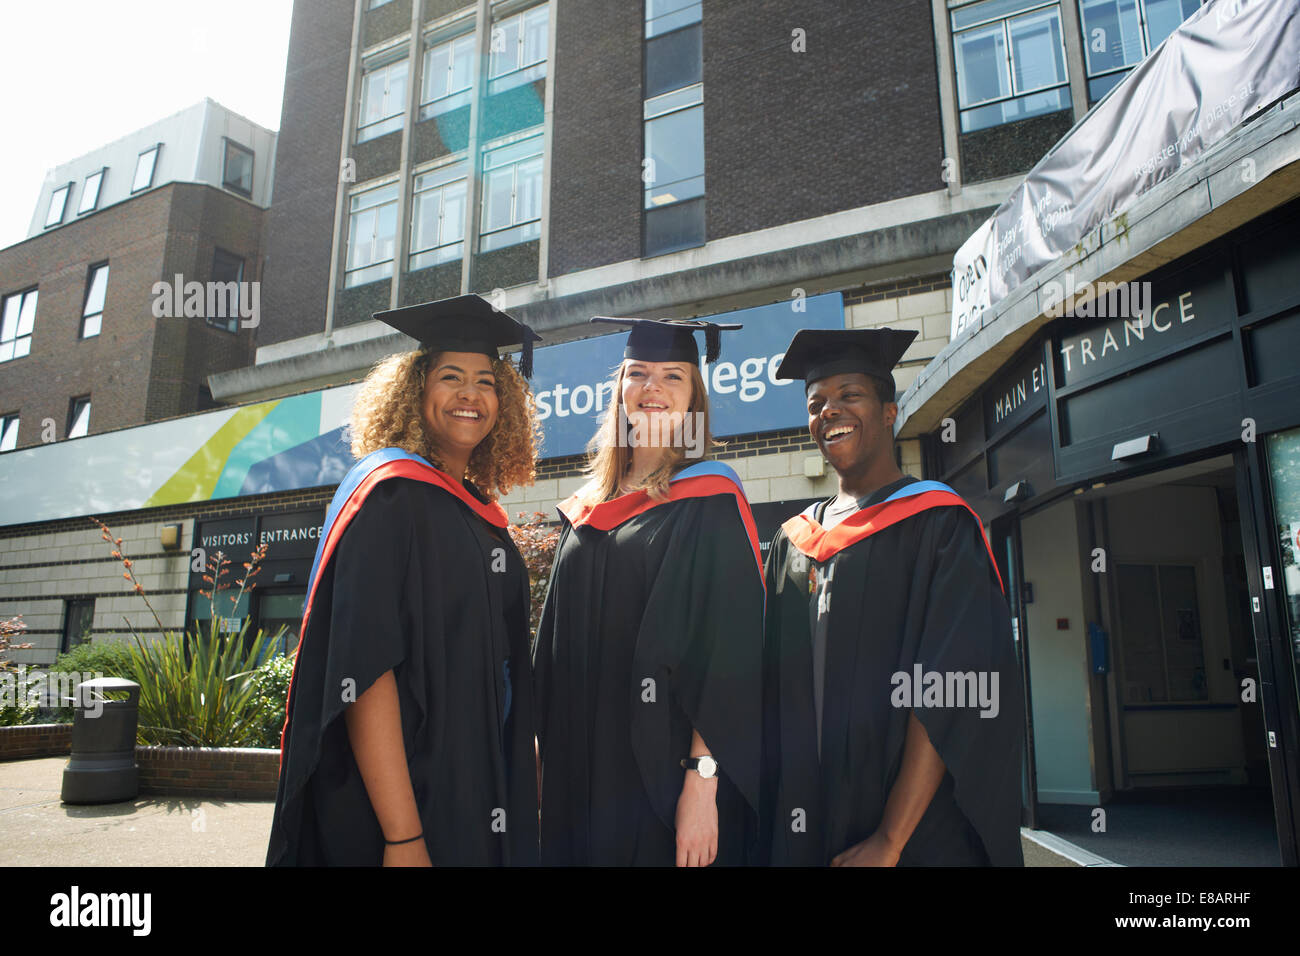 Portrait of three college students in graduation gowns and caps - Stock Image